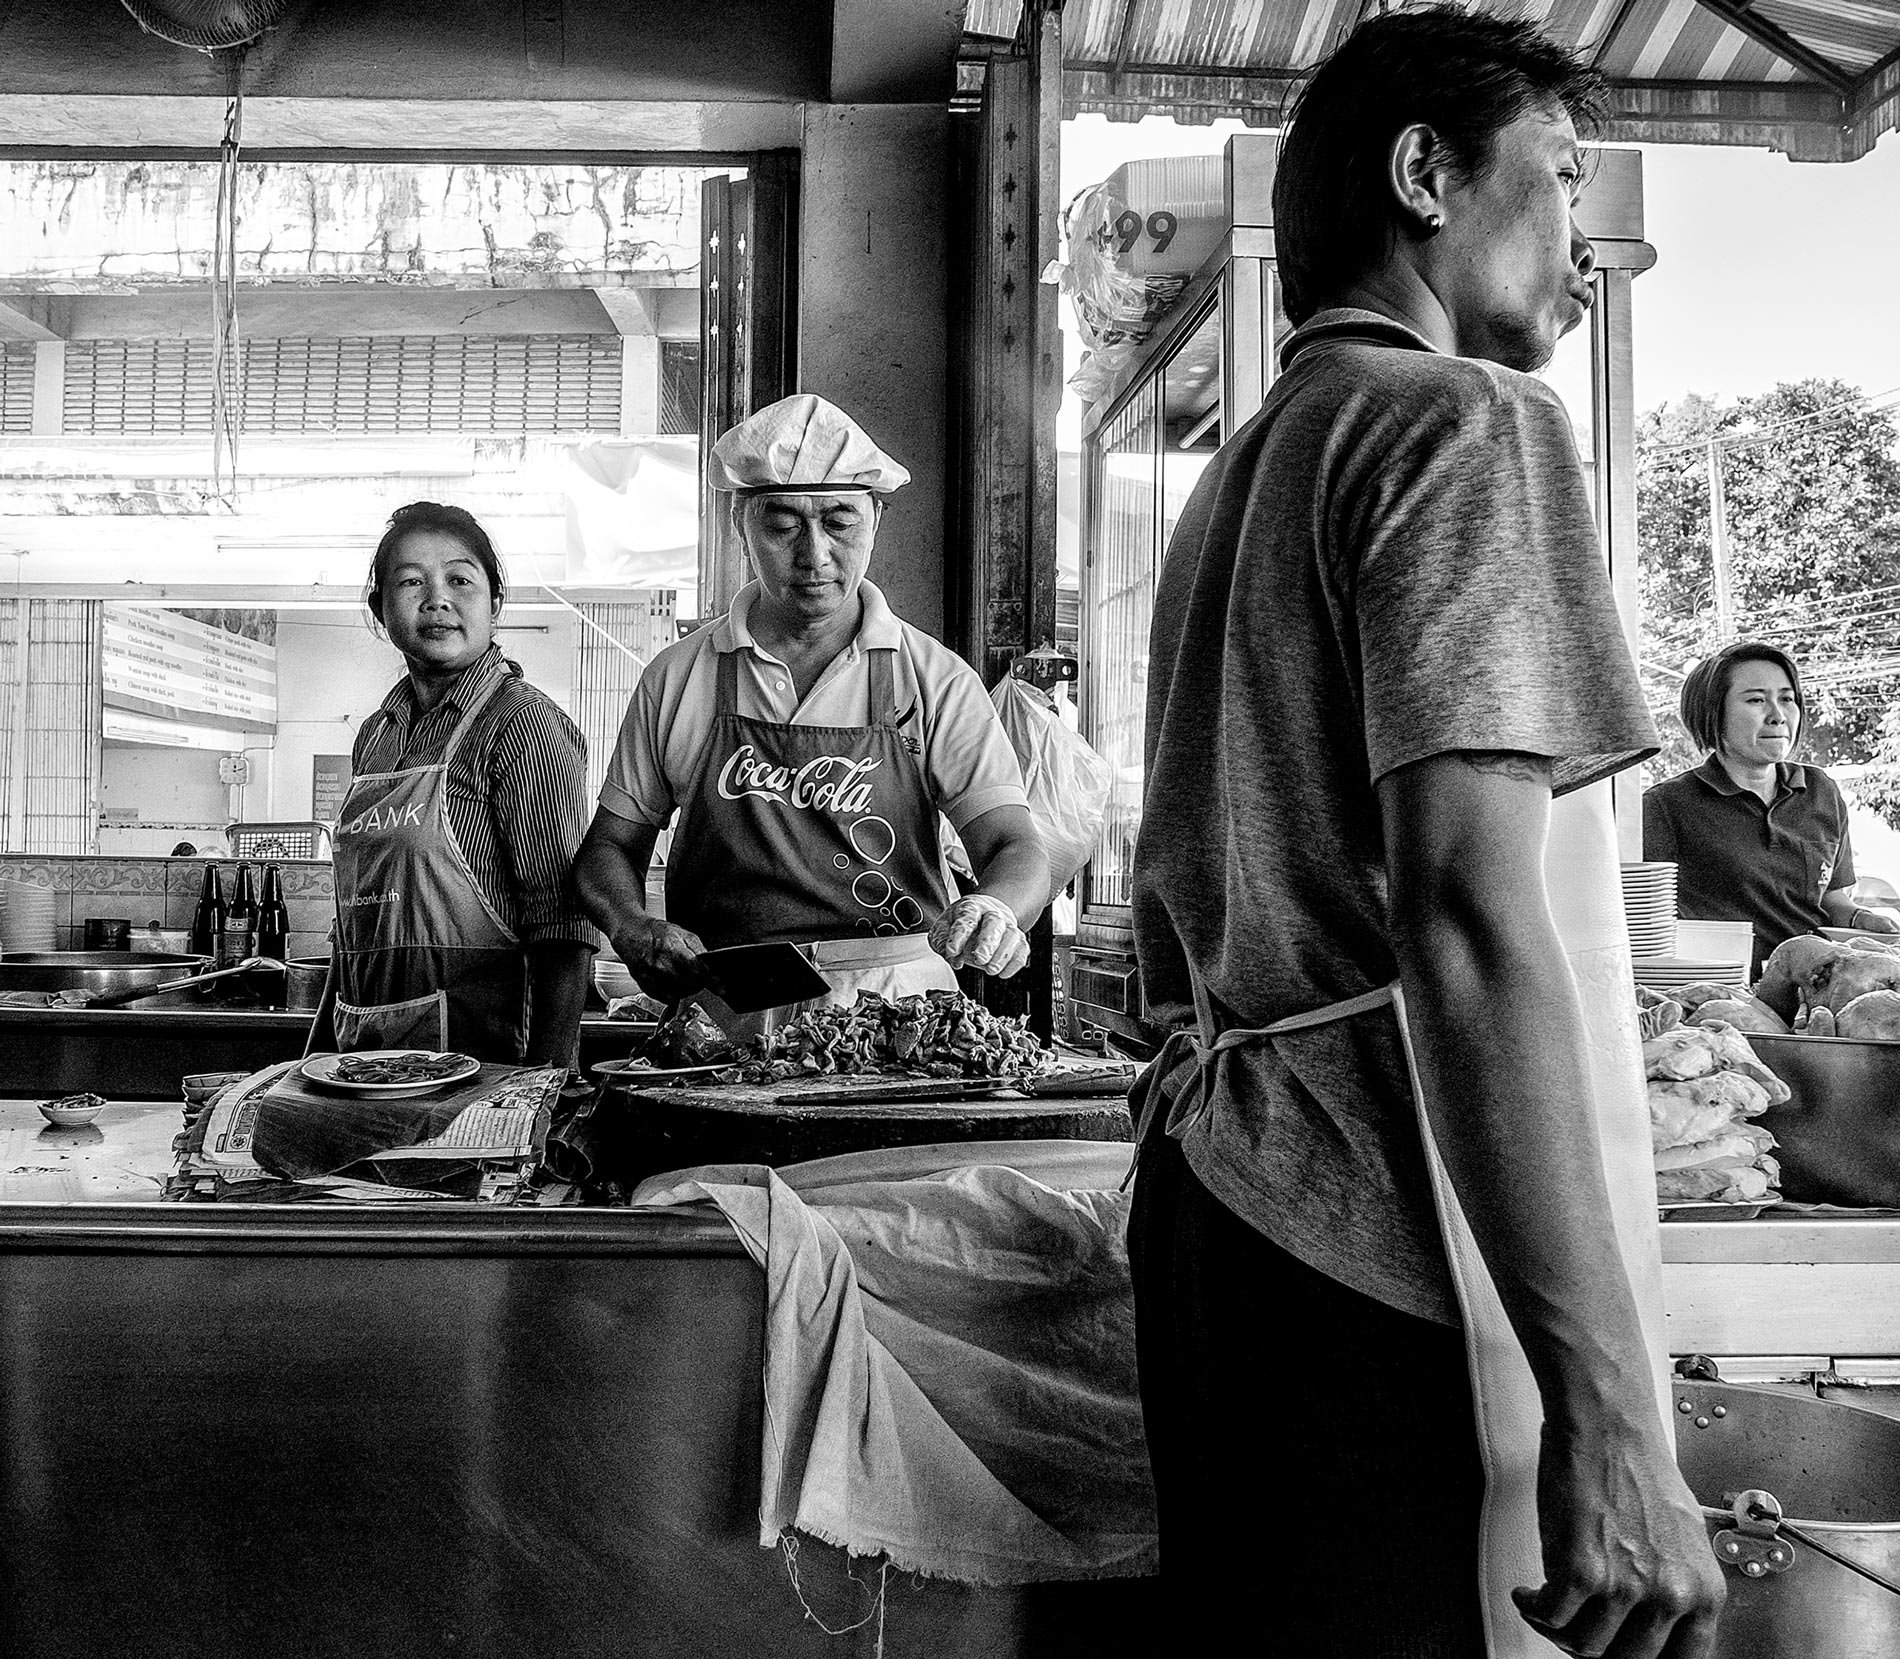 Cook - Chiang Mai